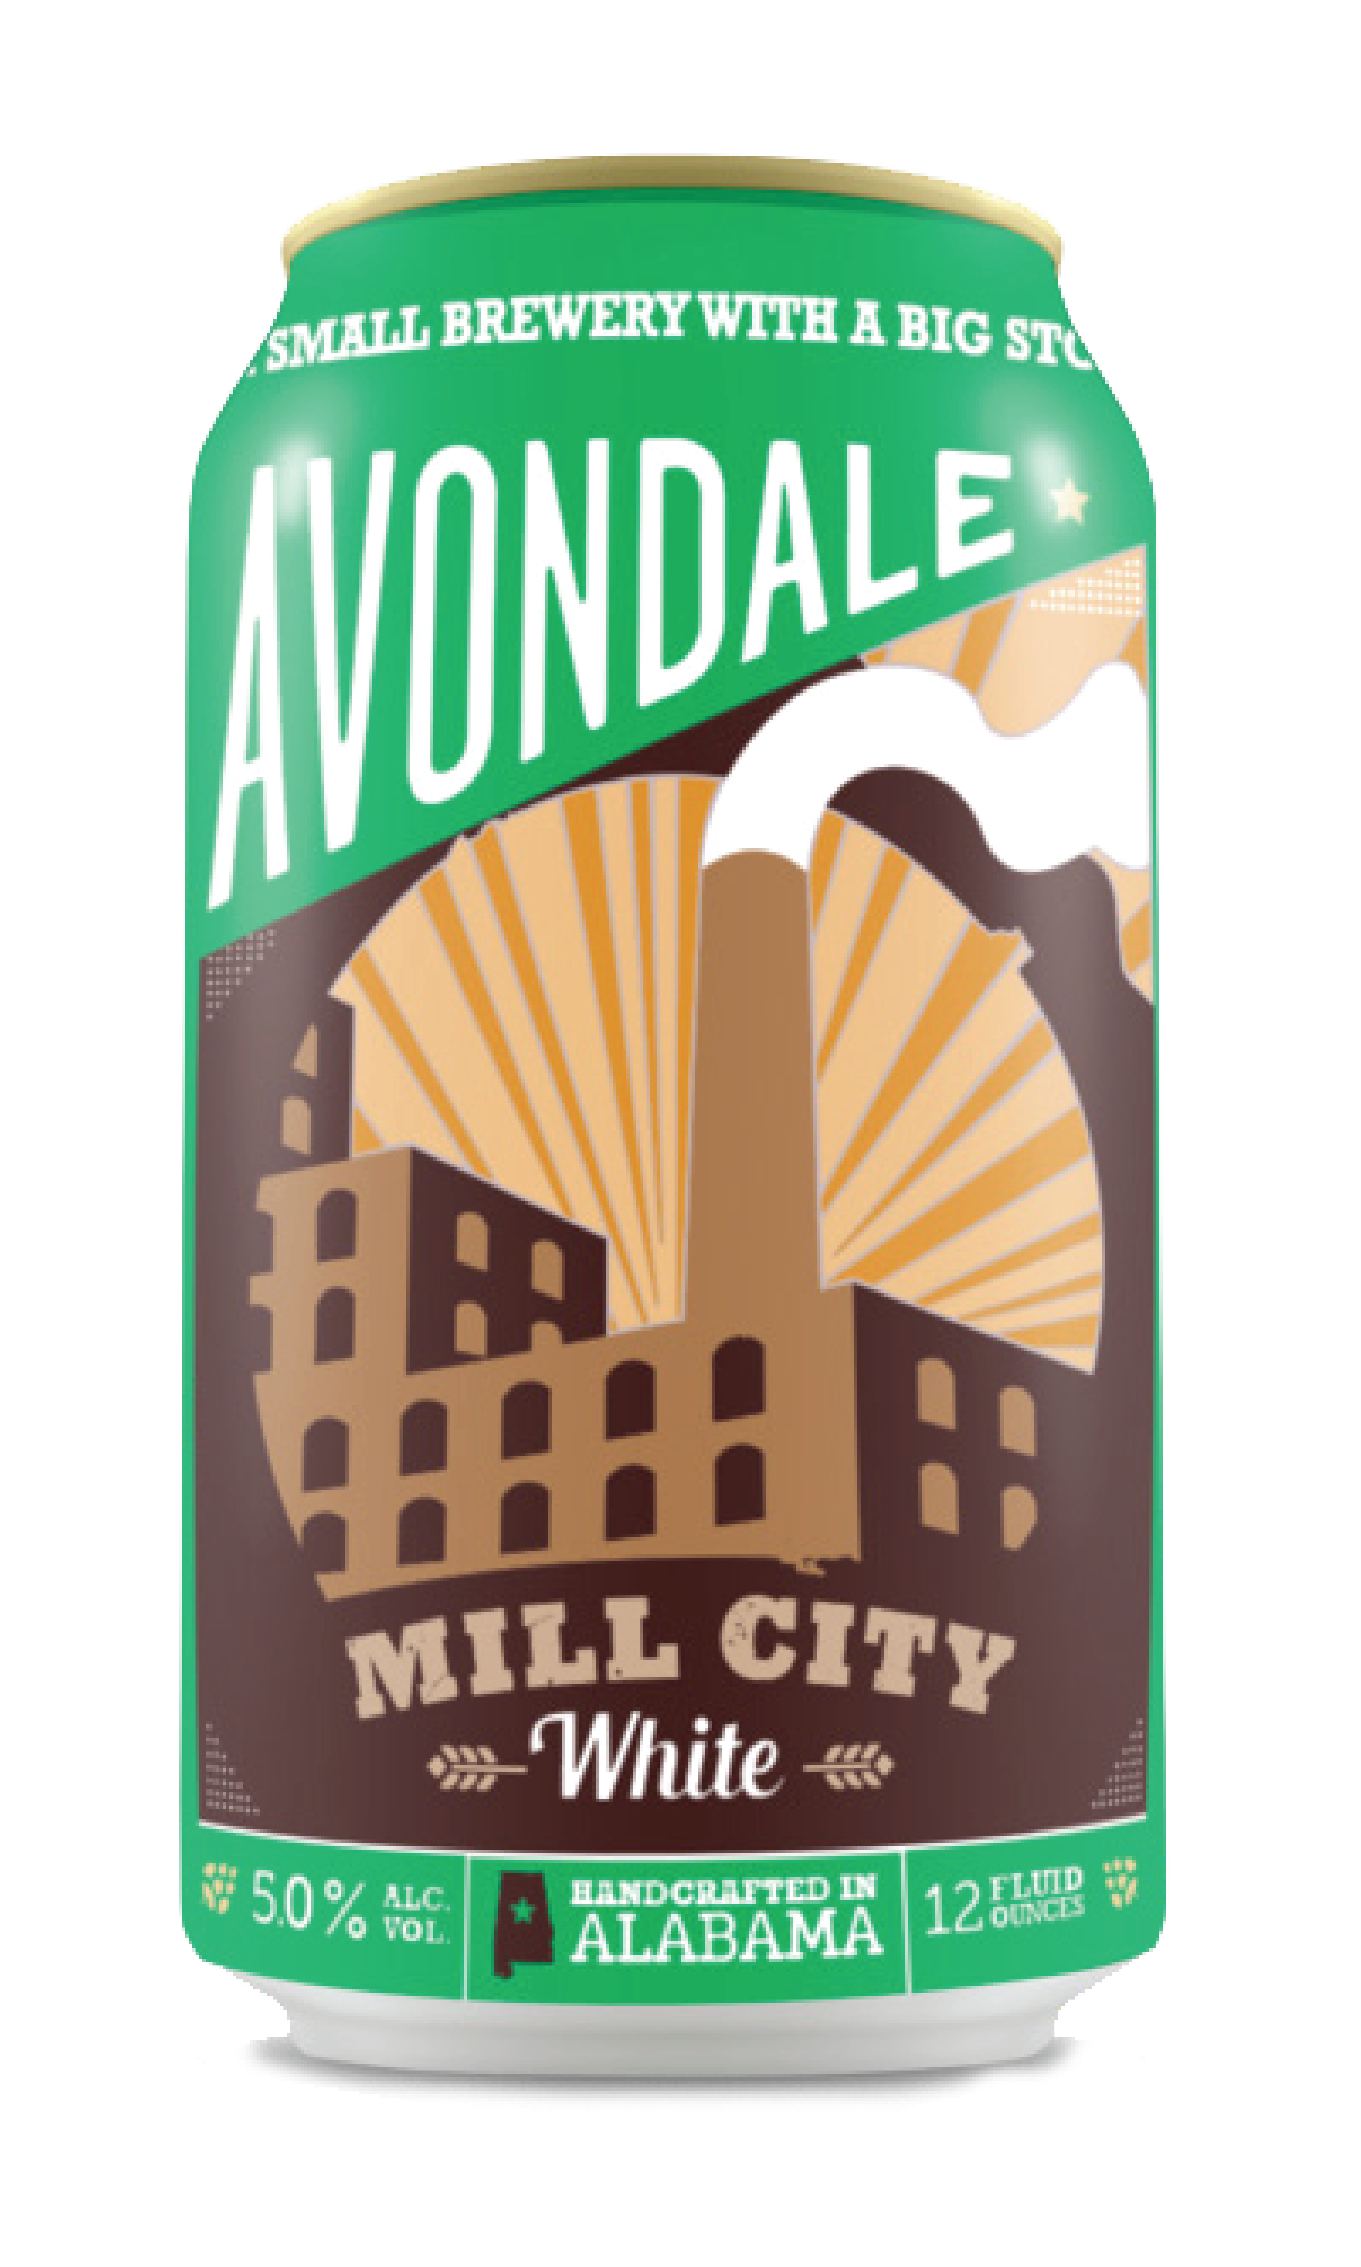 Mill City White | Avondale Brewing